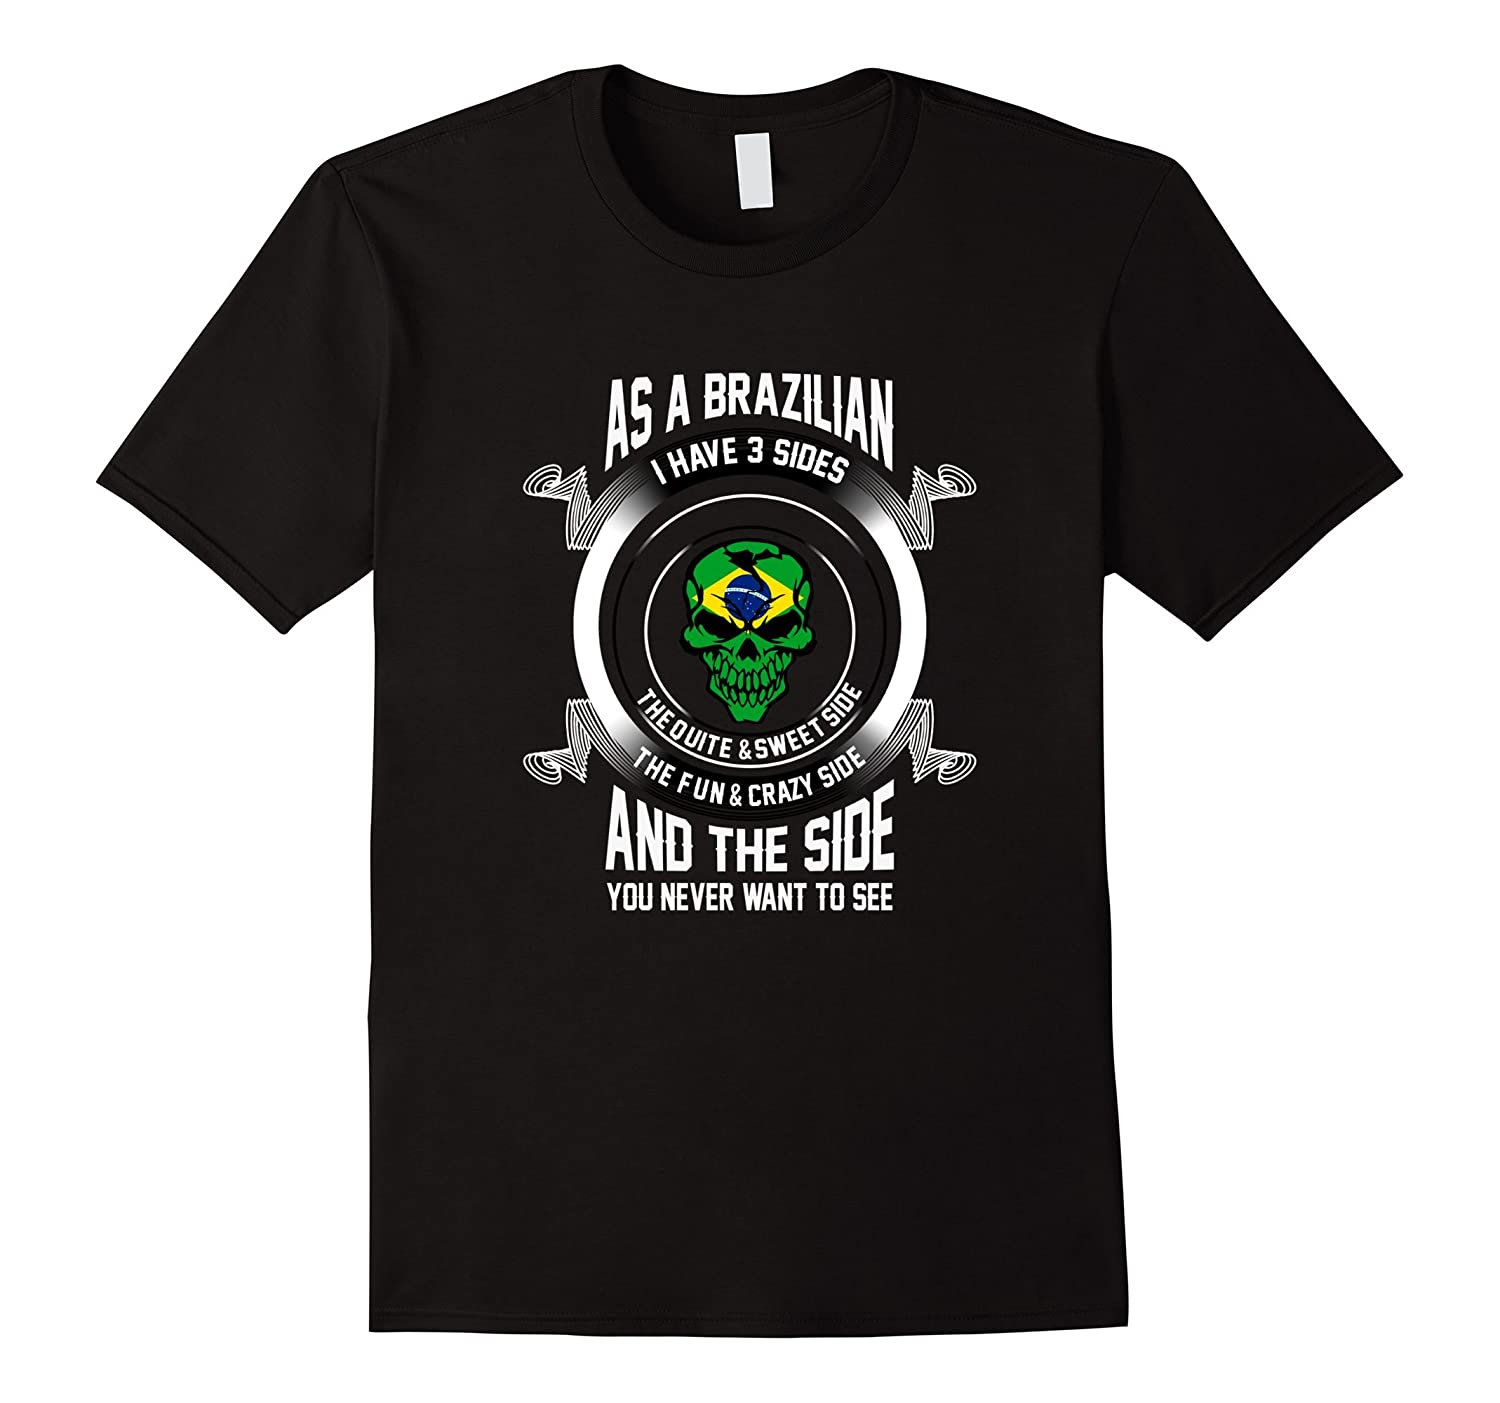 As A Brazilian I Have 3 Sides Shirt, Travel Lover Gift Shirt-FL